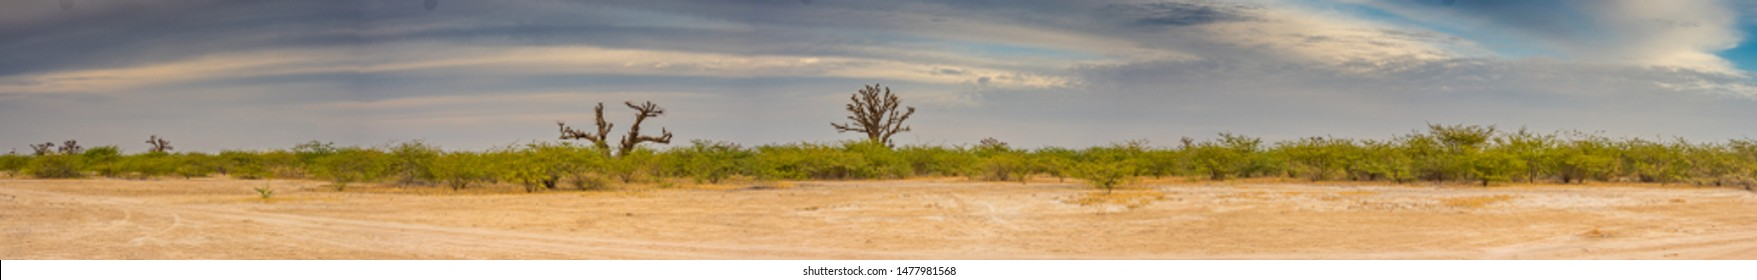 Single baobabs on the African steppe during dry season.  Trees of happiness, Panoramic view. Senegal. Africa.